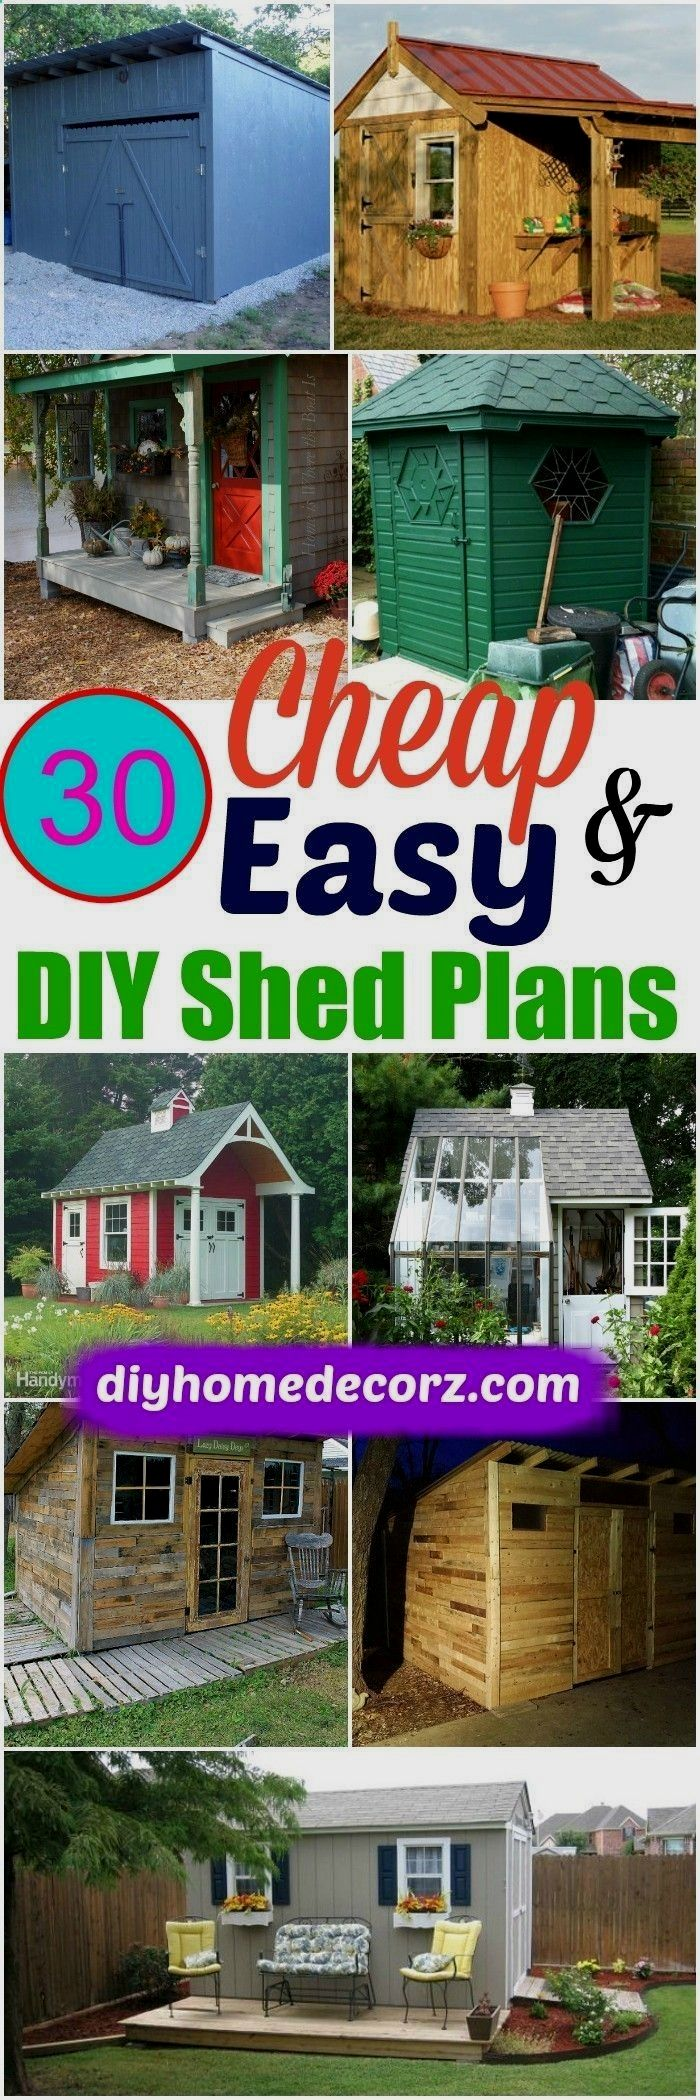 Shed Ideas, Backyard Storage Sheds, Storage Building Plans - CLICK ...